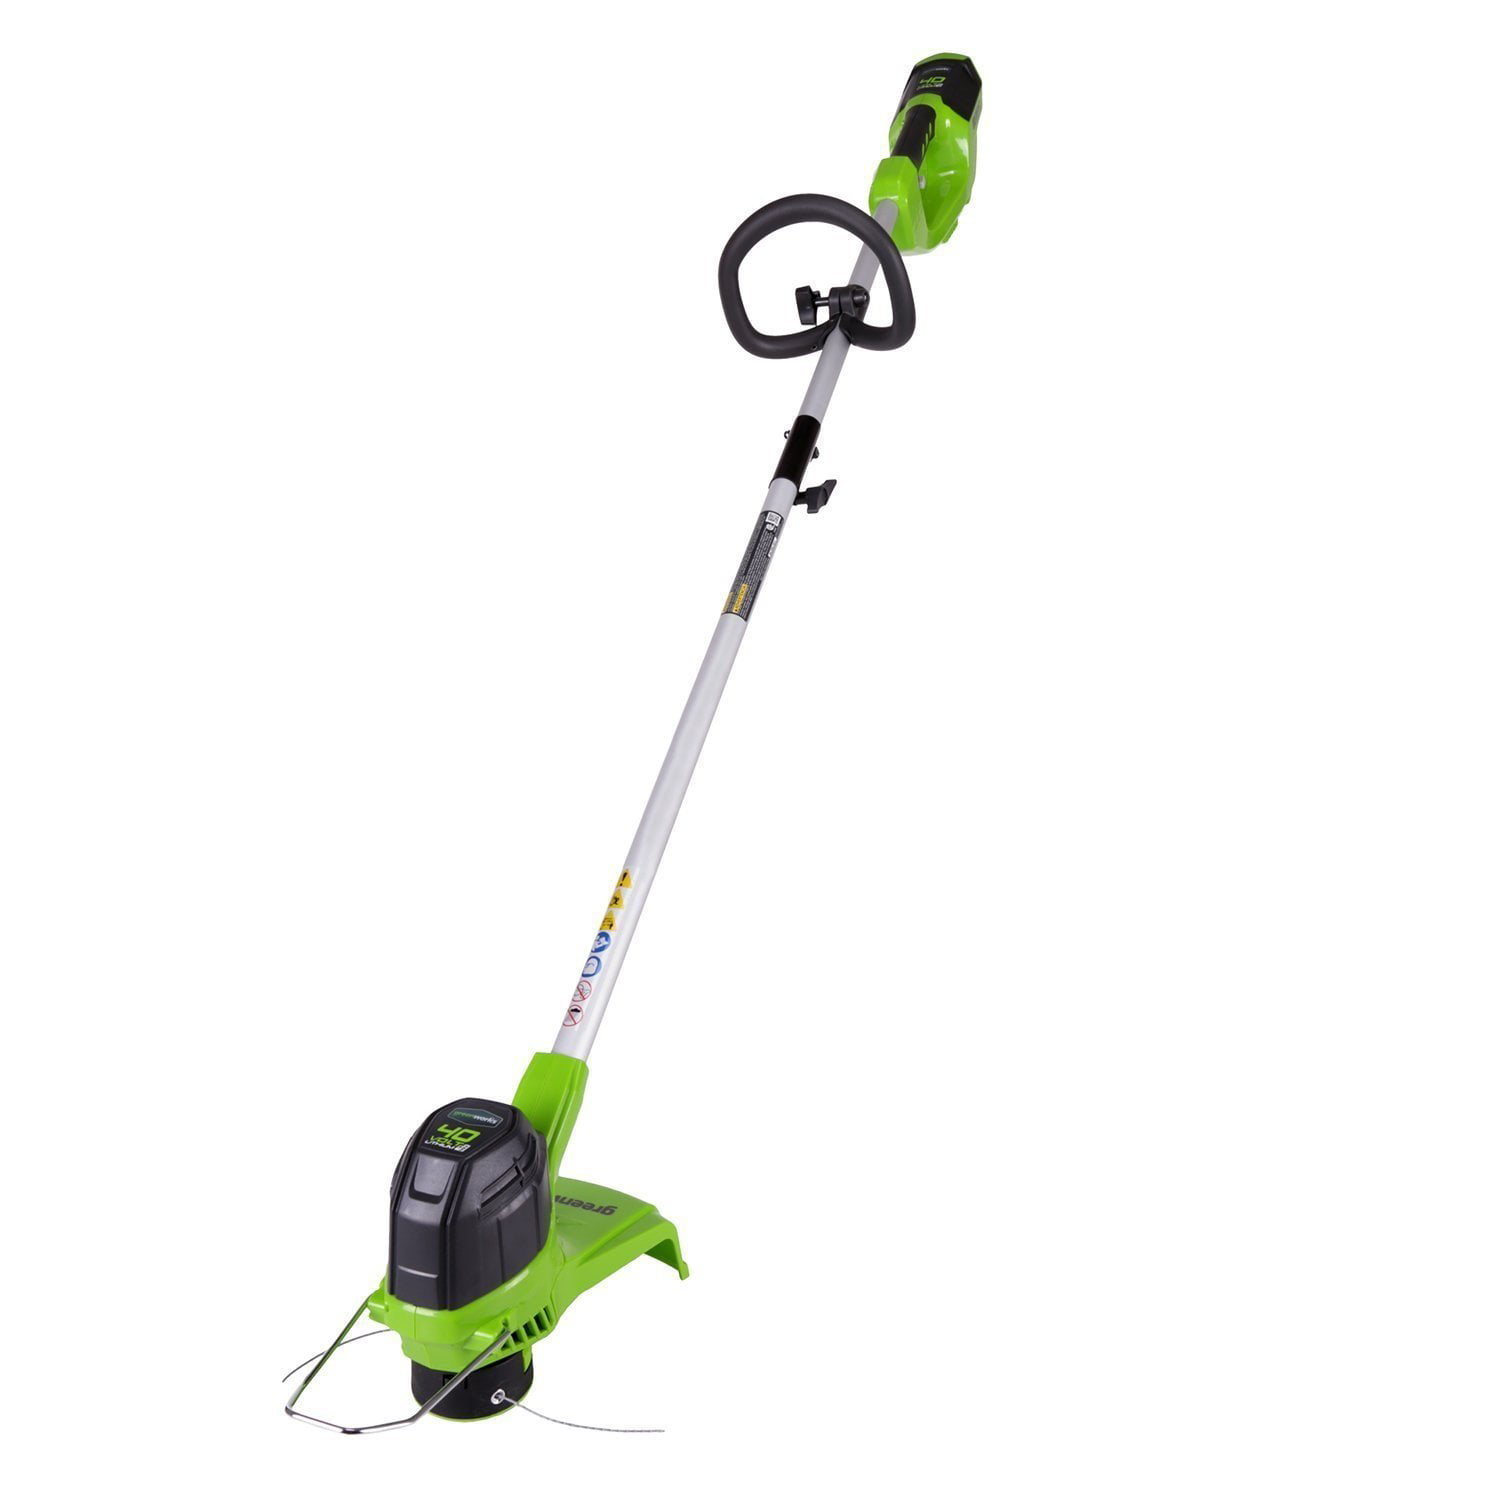 Greenworks G-MAX 40V 12-Inch Cordless String Trimmer, Battery and Charger Not Included... by Sunrise Global Marketing, LLC